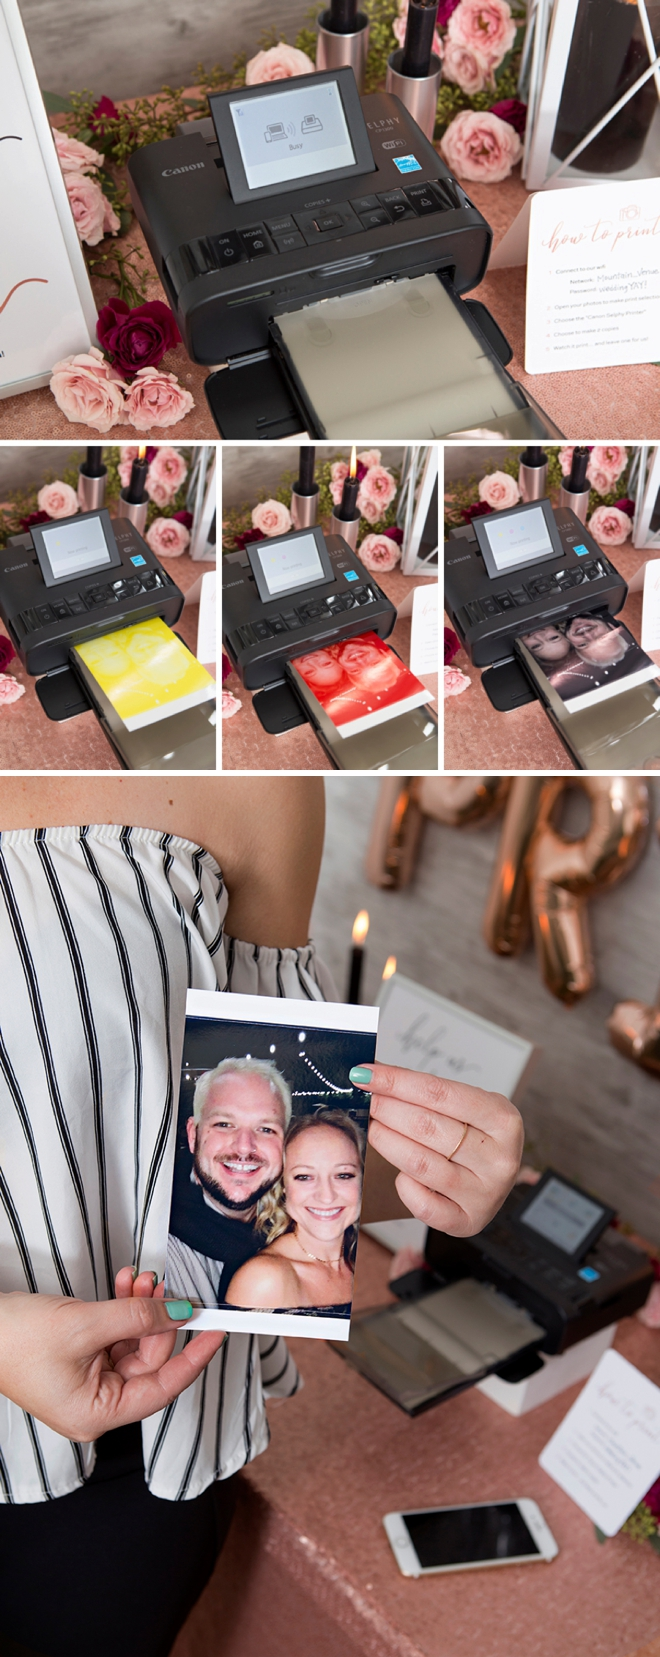 How to use AirPrint and the Canon Selphy printer!